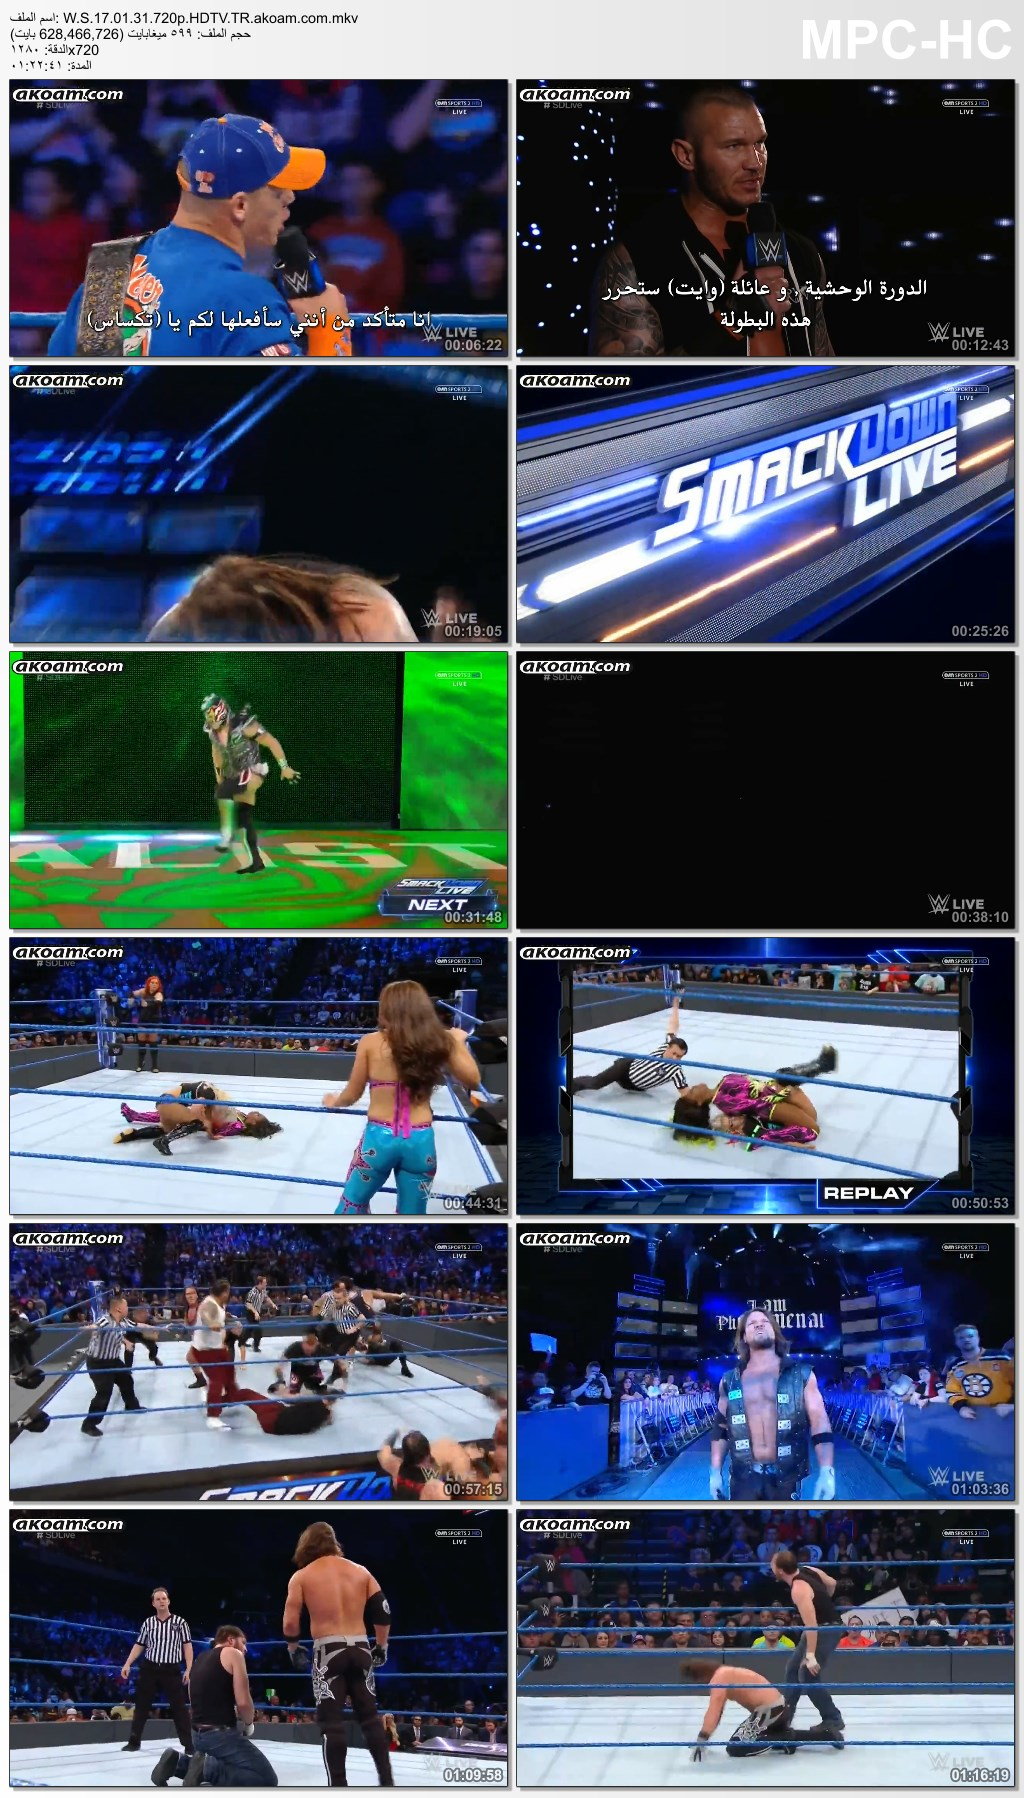 WWE Smackdown,WWE,Smackdown